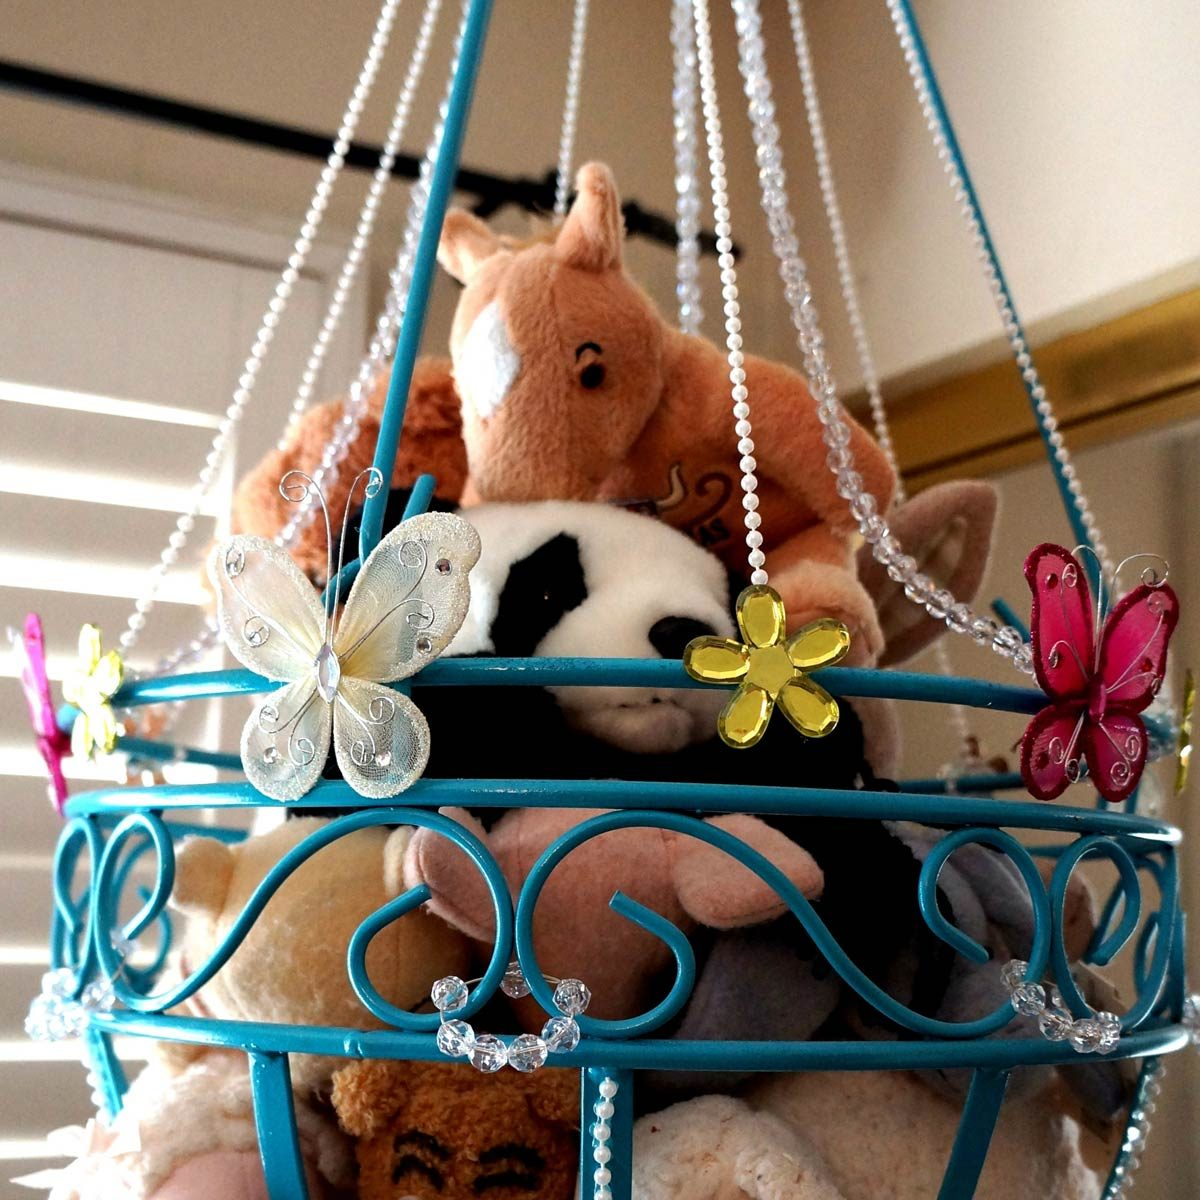 Stuffed Animal Toy Storage: 13 Incredible Upcycled Storage Systems